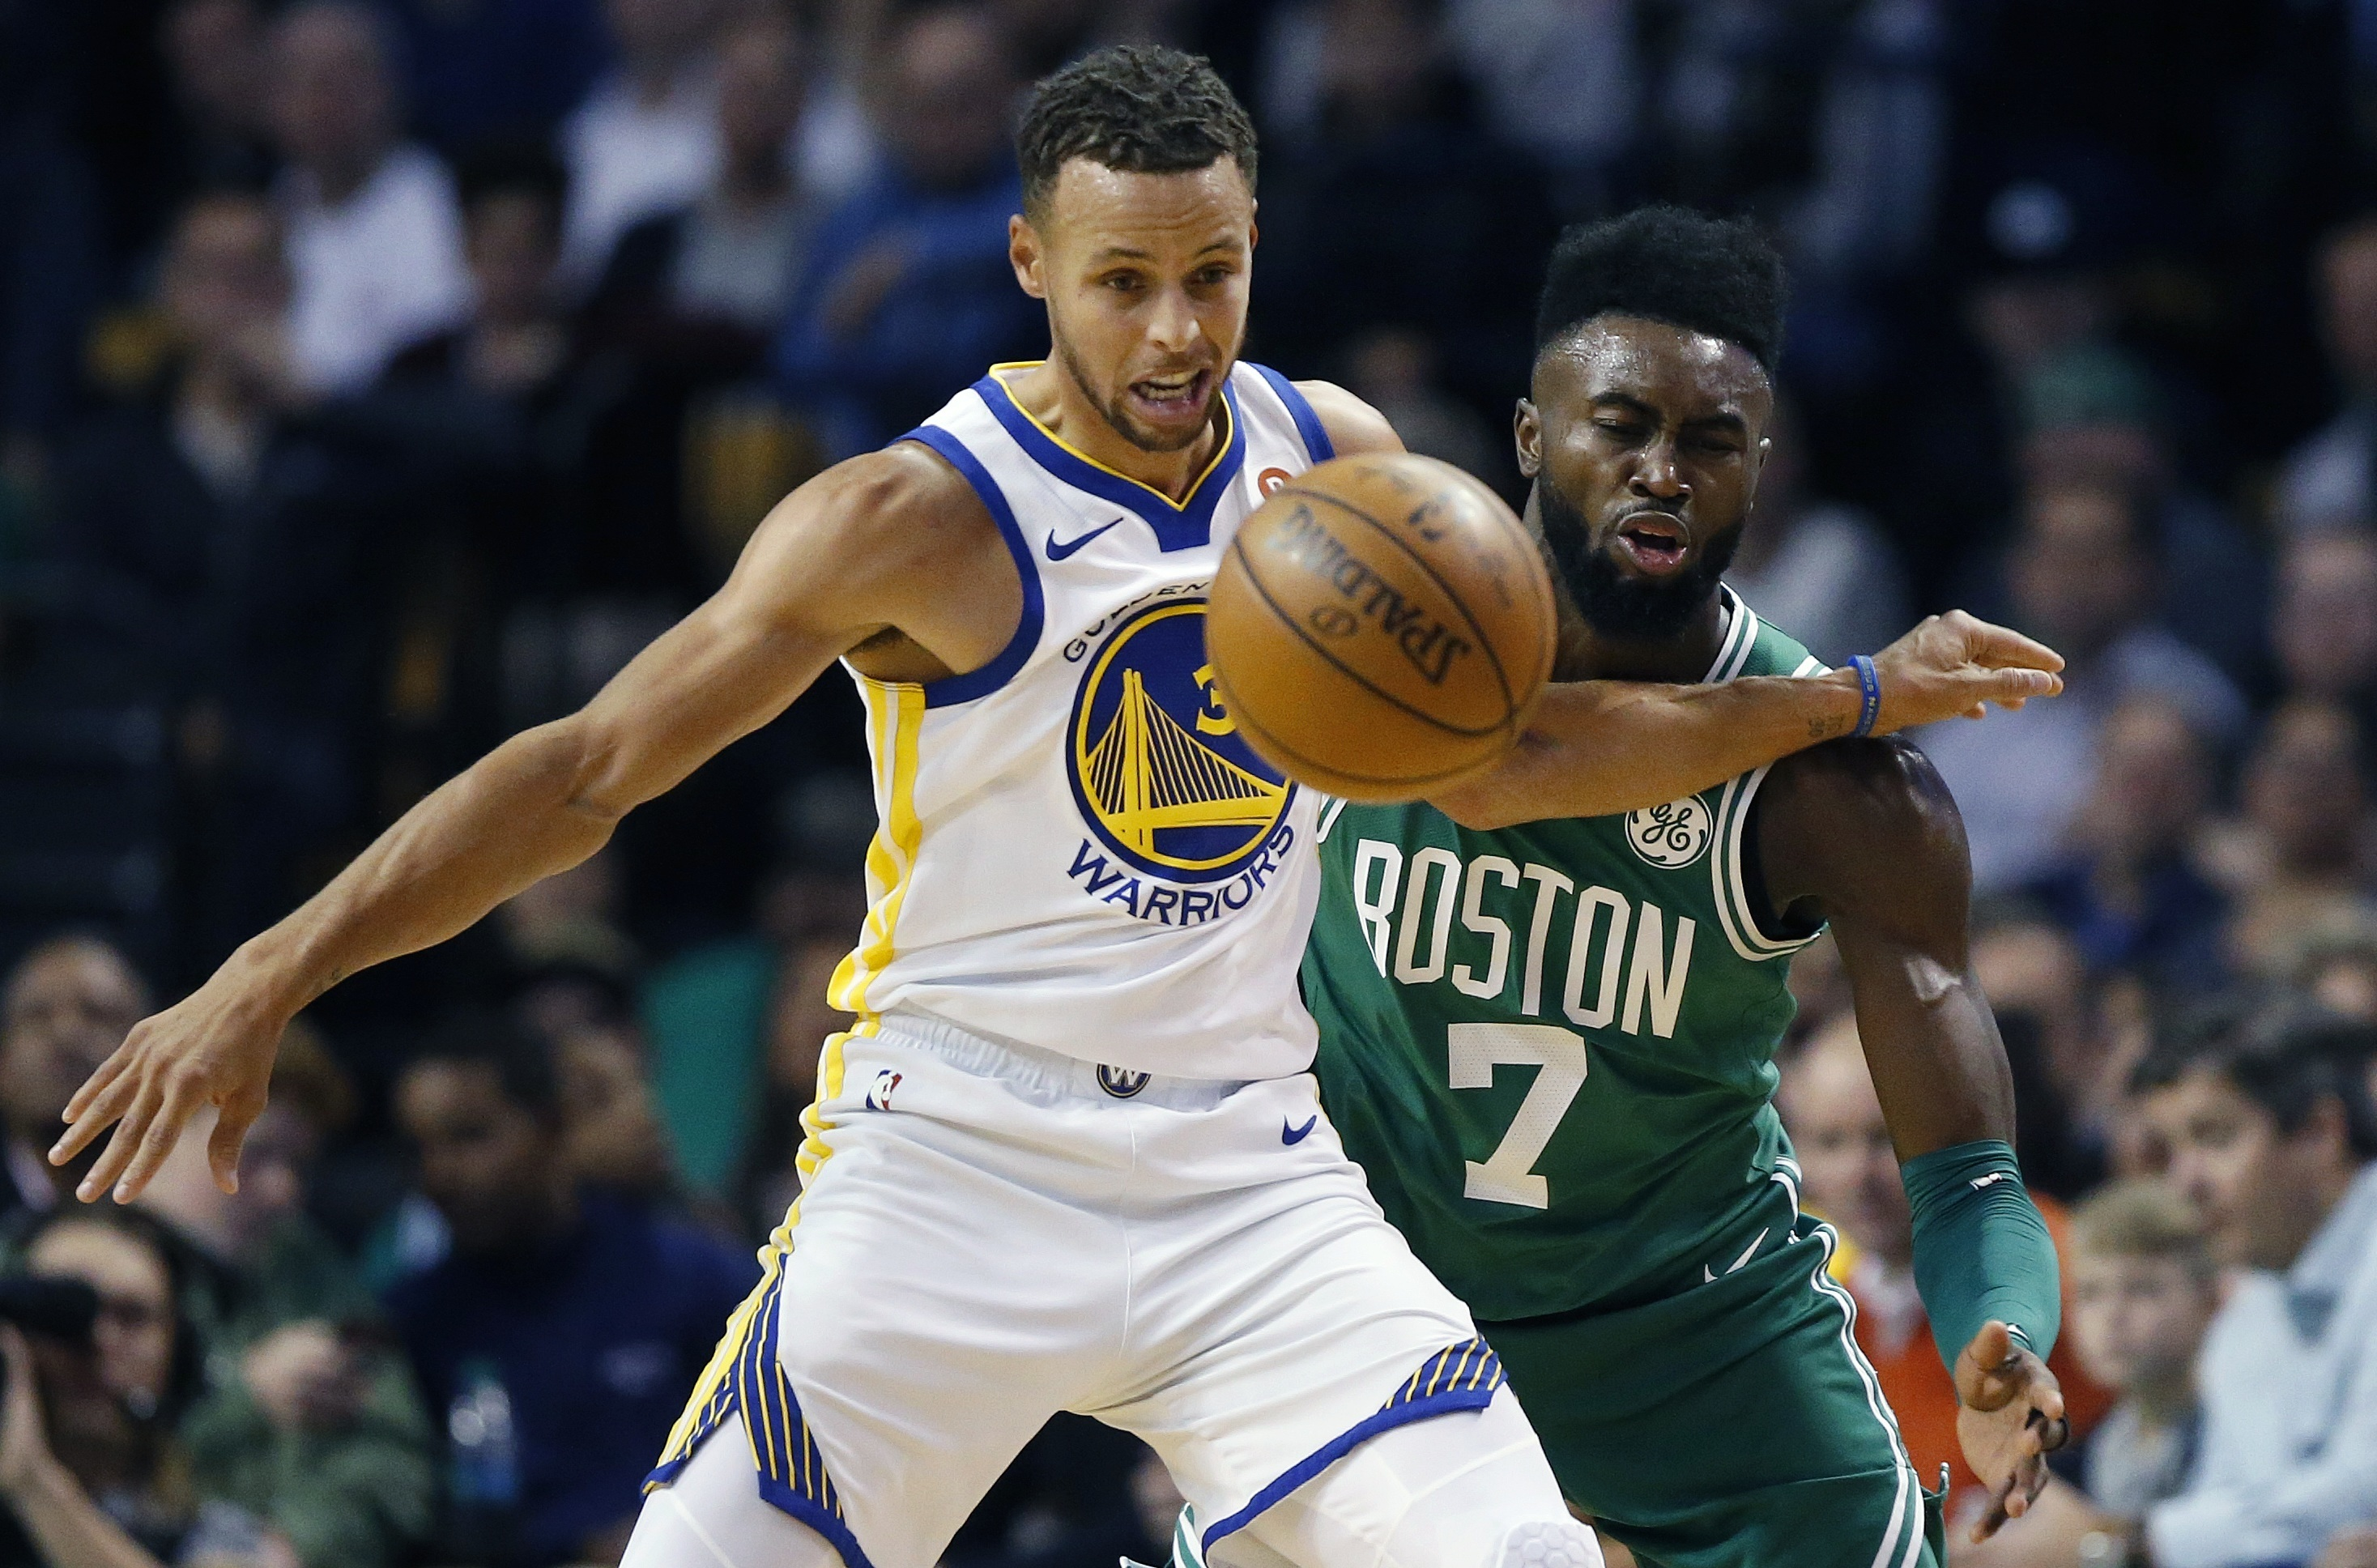 Boston Celtics' Jaylen Brown, right, and Golden State Warriors' Stephen Curry, left, battle for a loose ball during the first quarter of an NBA basketball game in Boston, Thursday, Nov. 16, 2017. AP NEWSWIRE